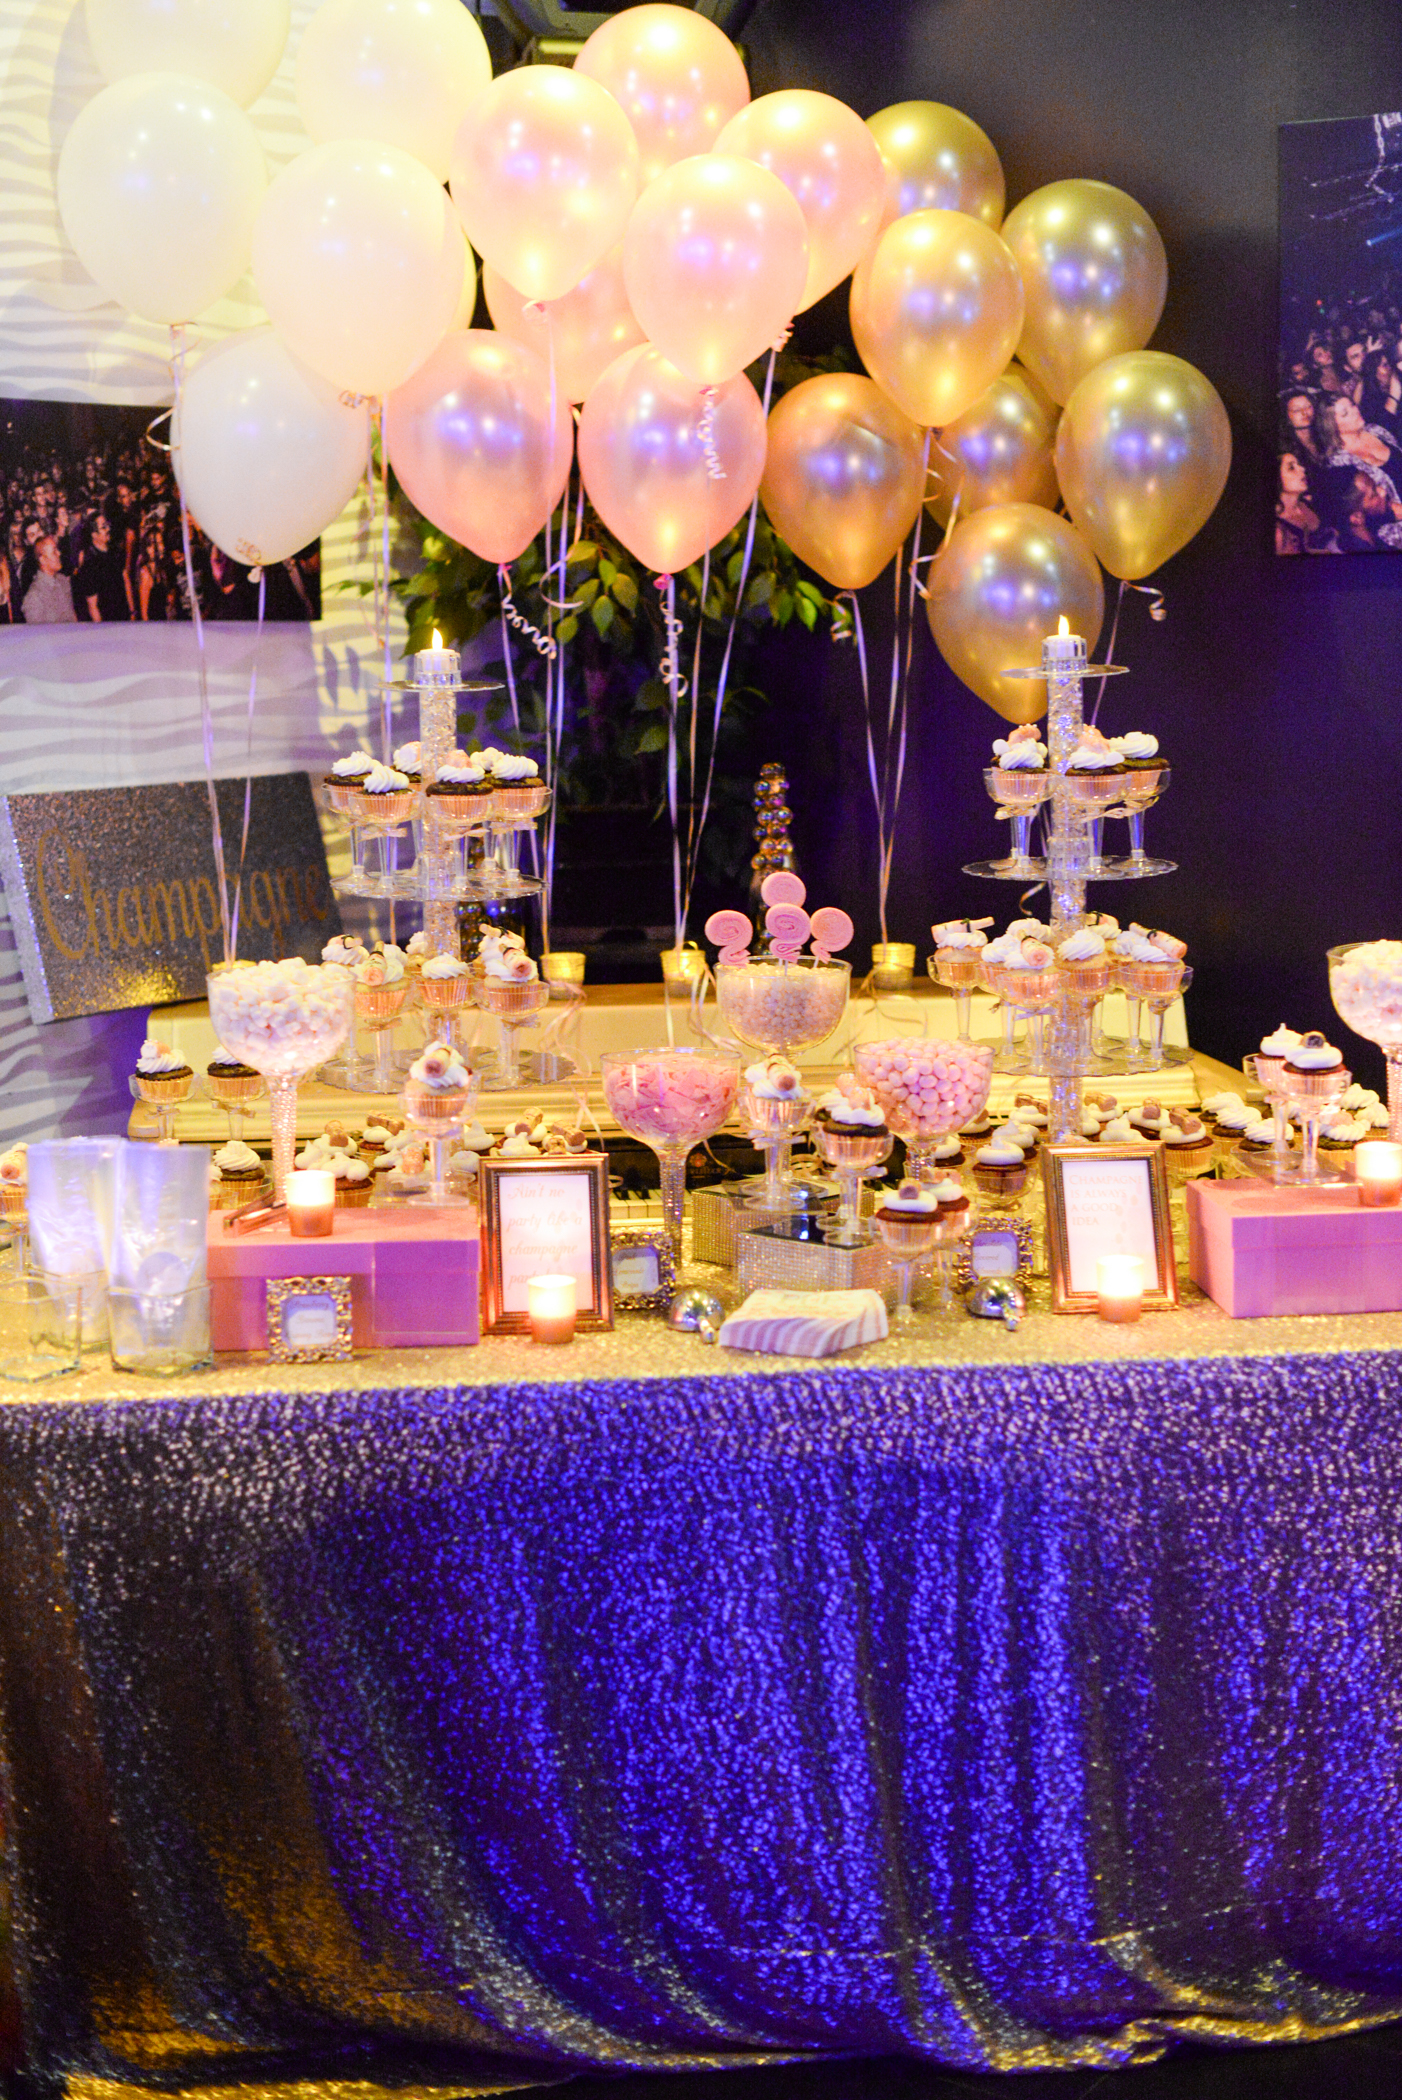 Champagne Party Details Small-8.JPG